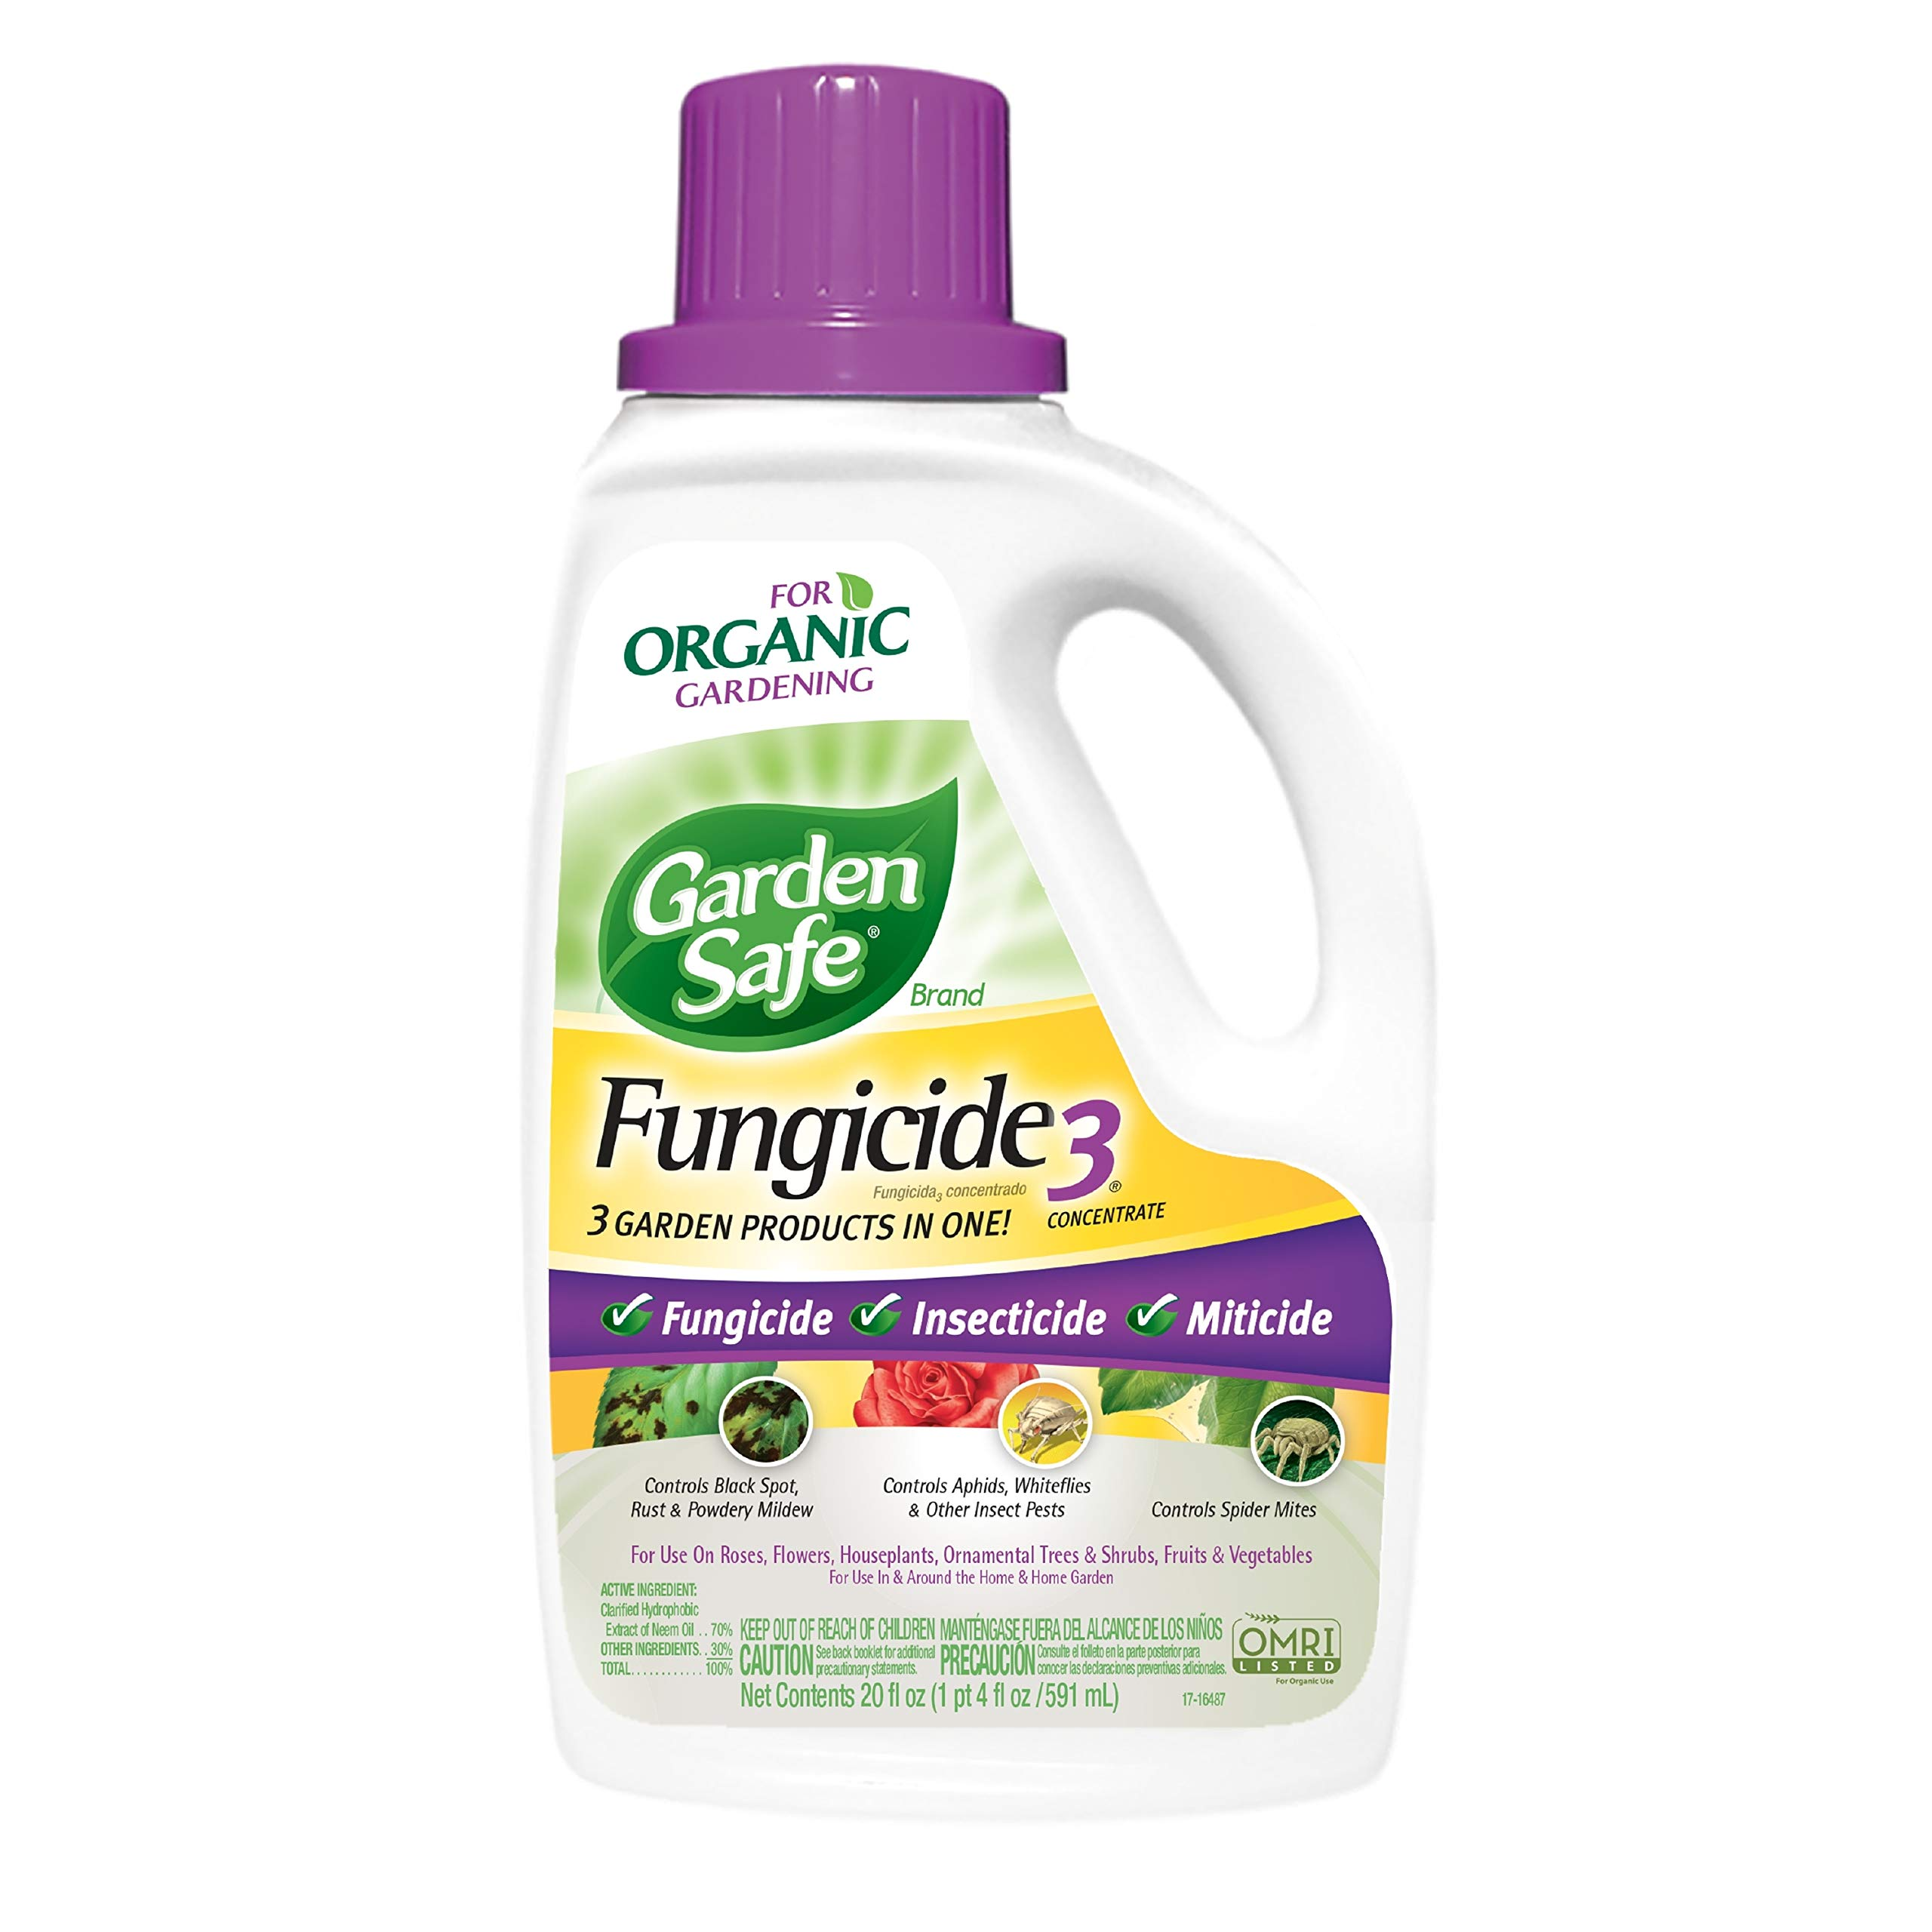 Garden Safe Brand Fungicide3 Concentrate, 20-Ounce, 6-pack by Garden Safe